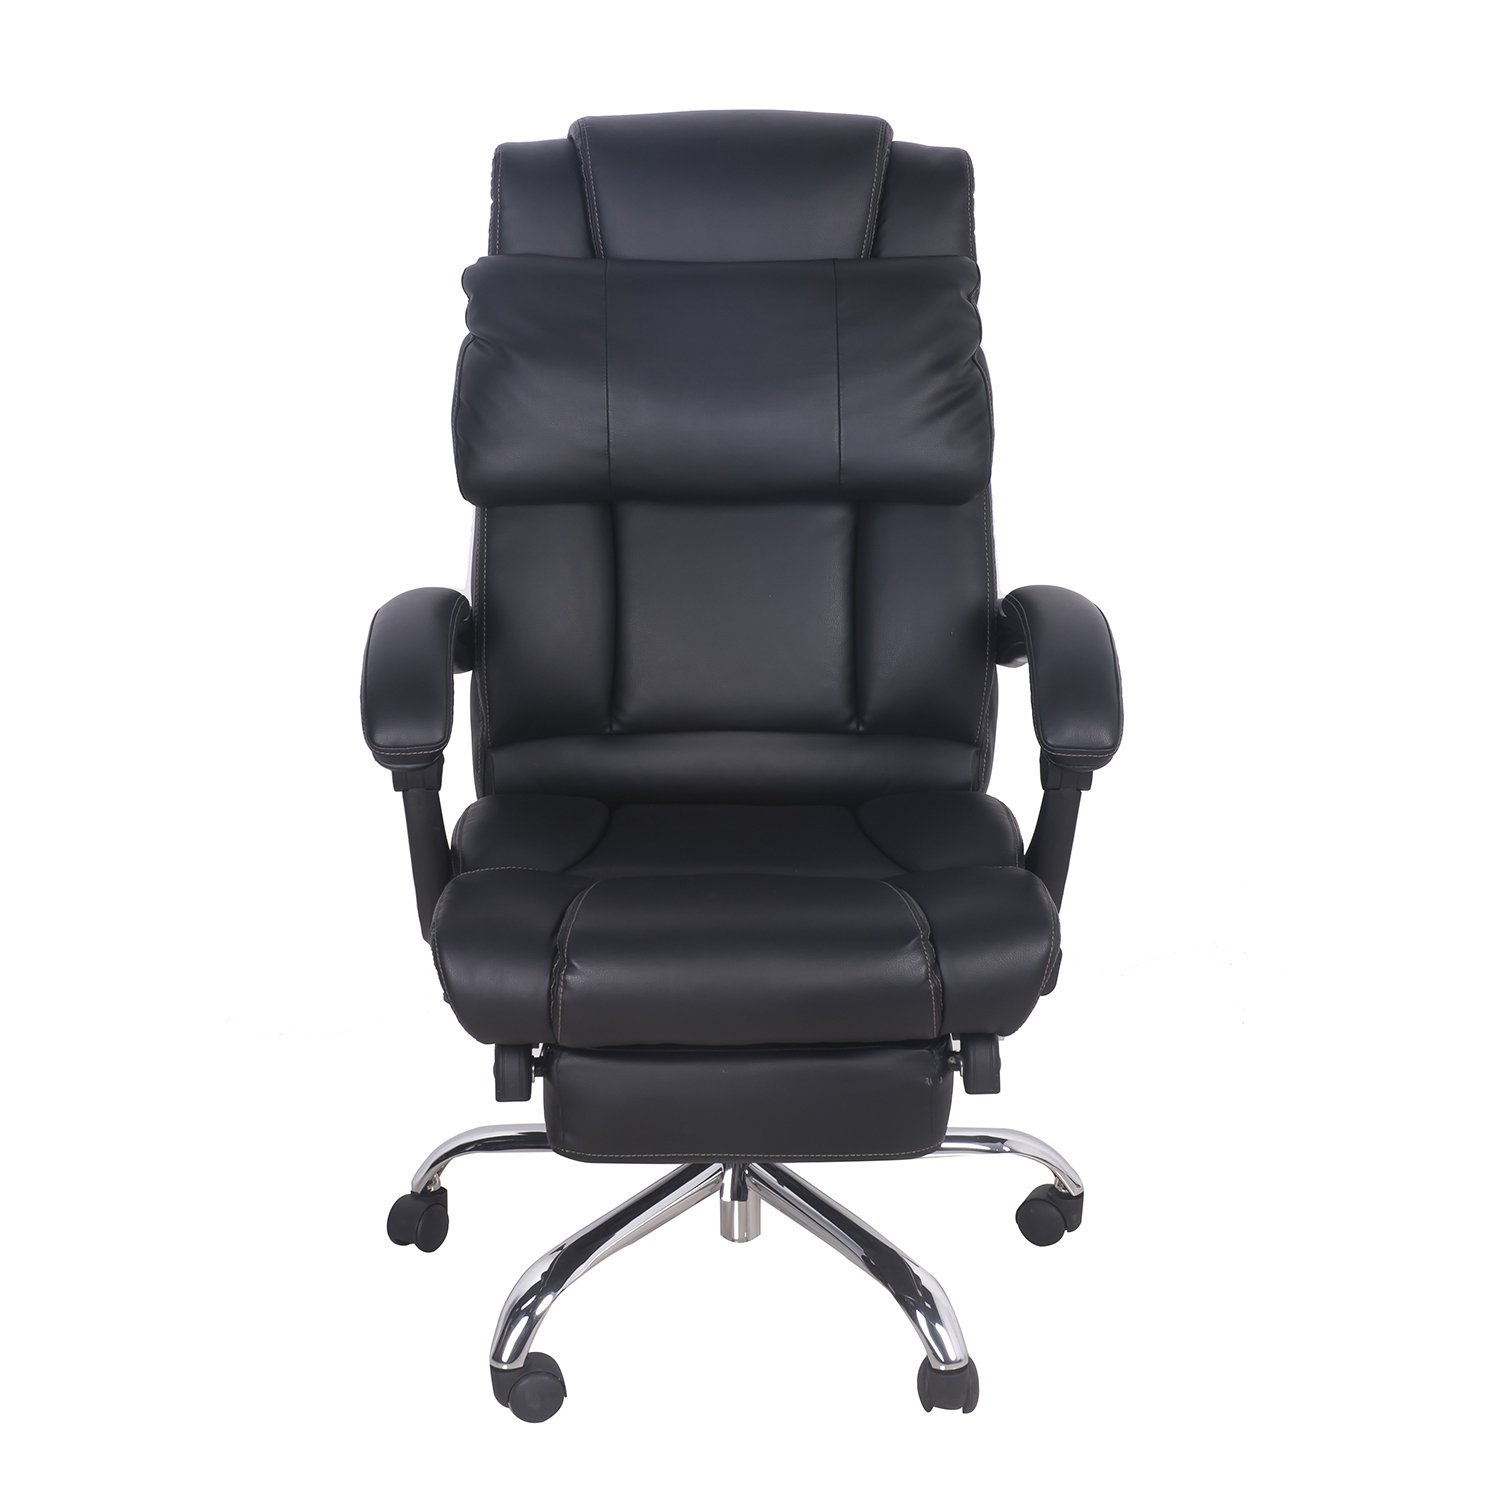 office reclining chair. Merax Technical Leather Big Tall Executive Recliner Napping - Black Office Reclining Chair